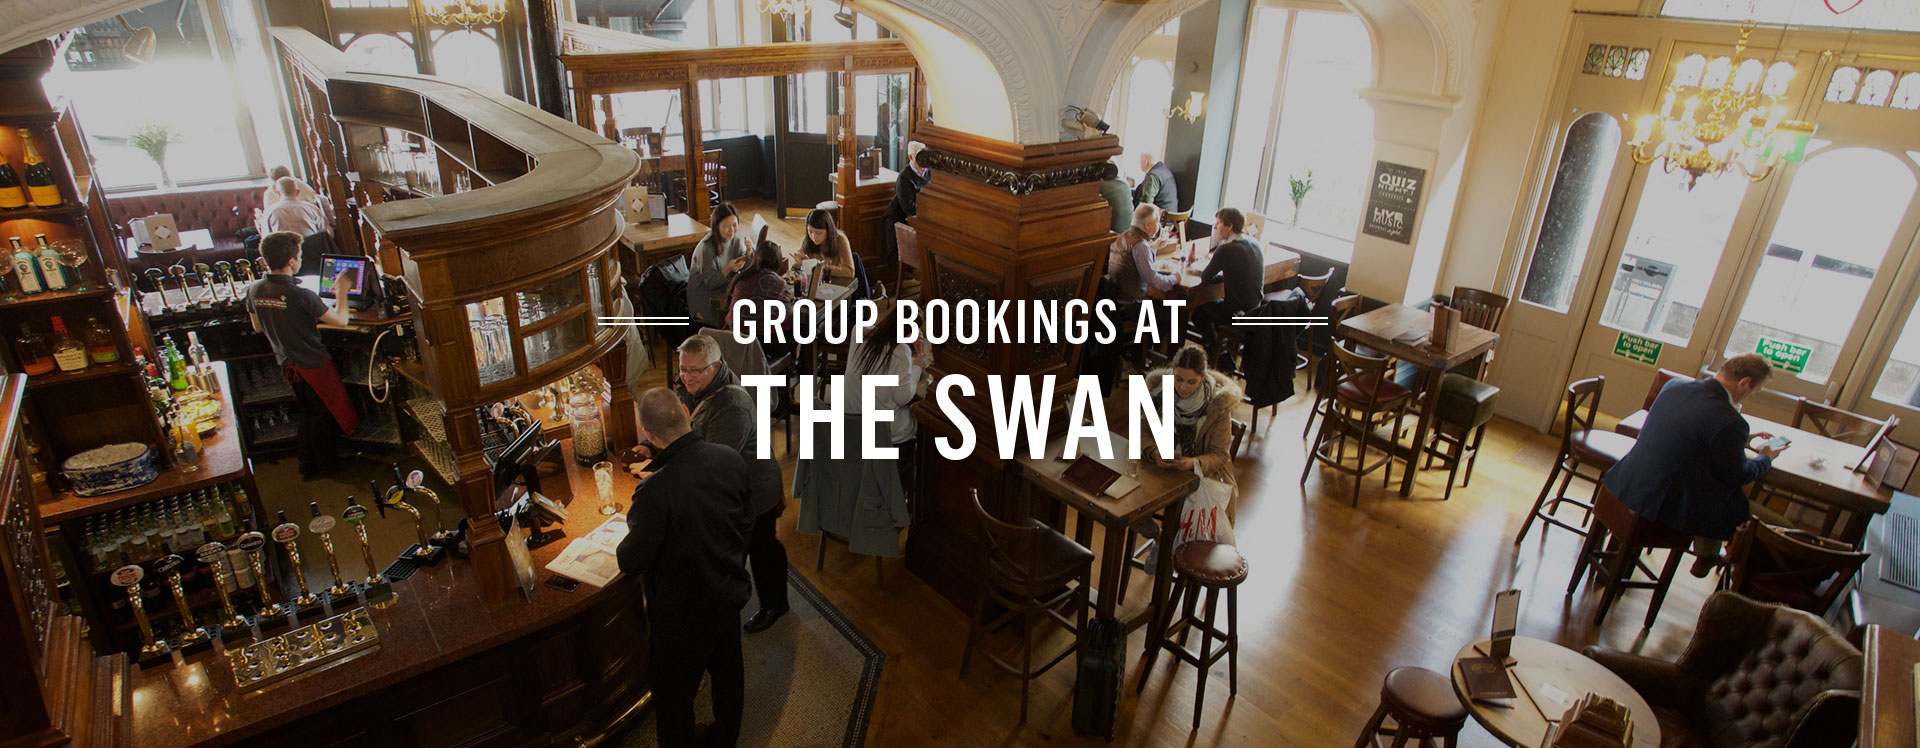 Group Bookings at The Swan